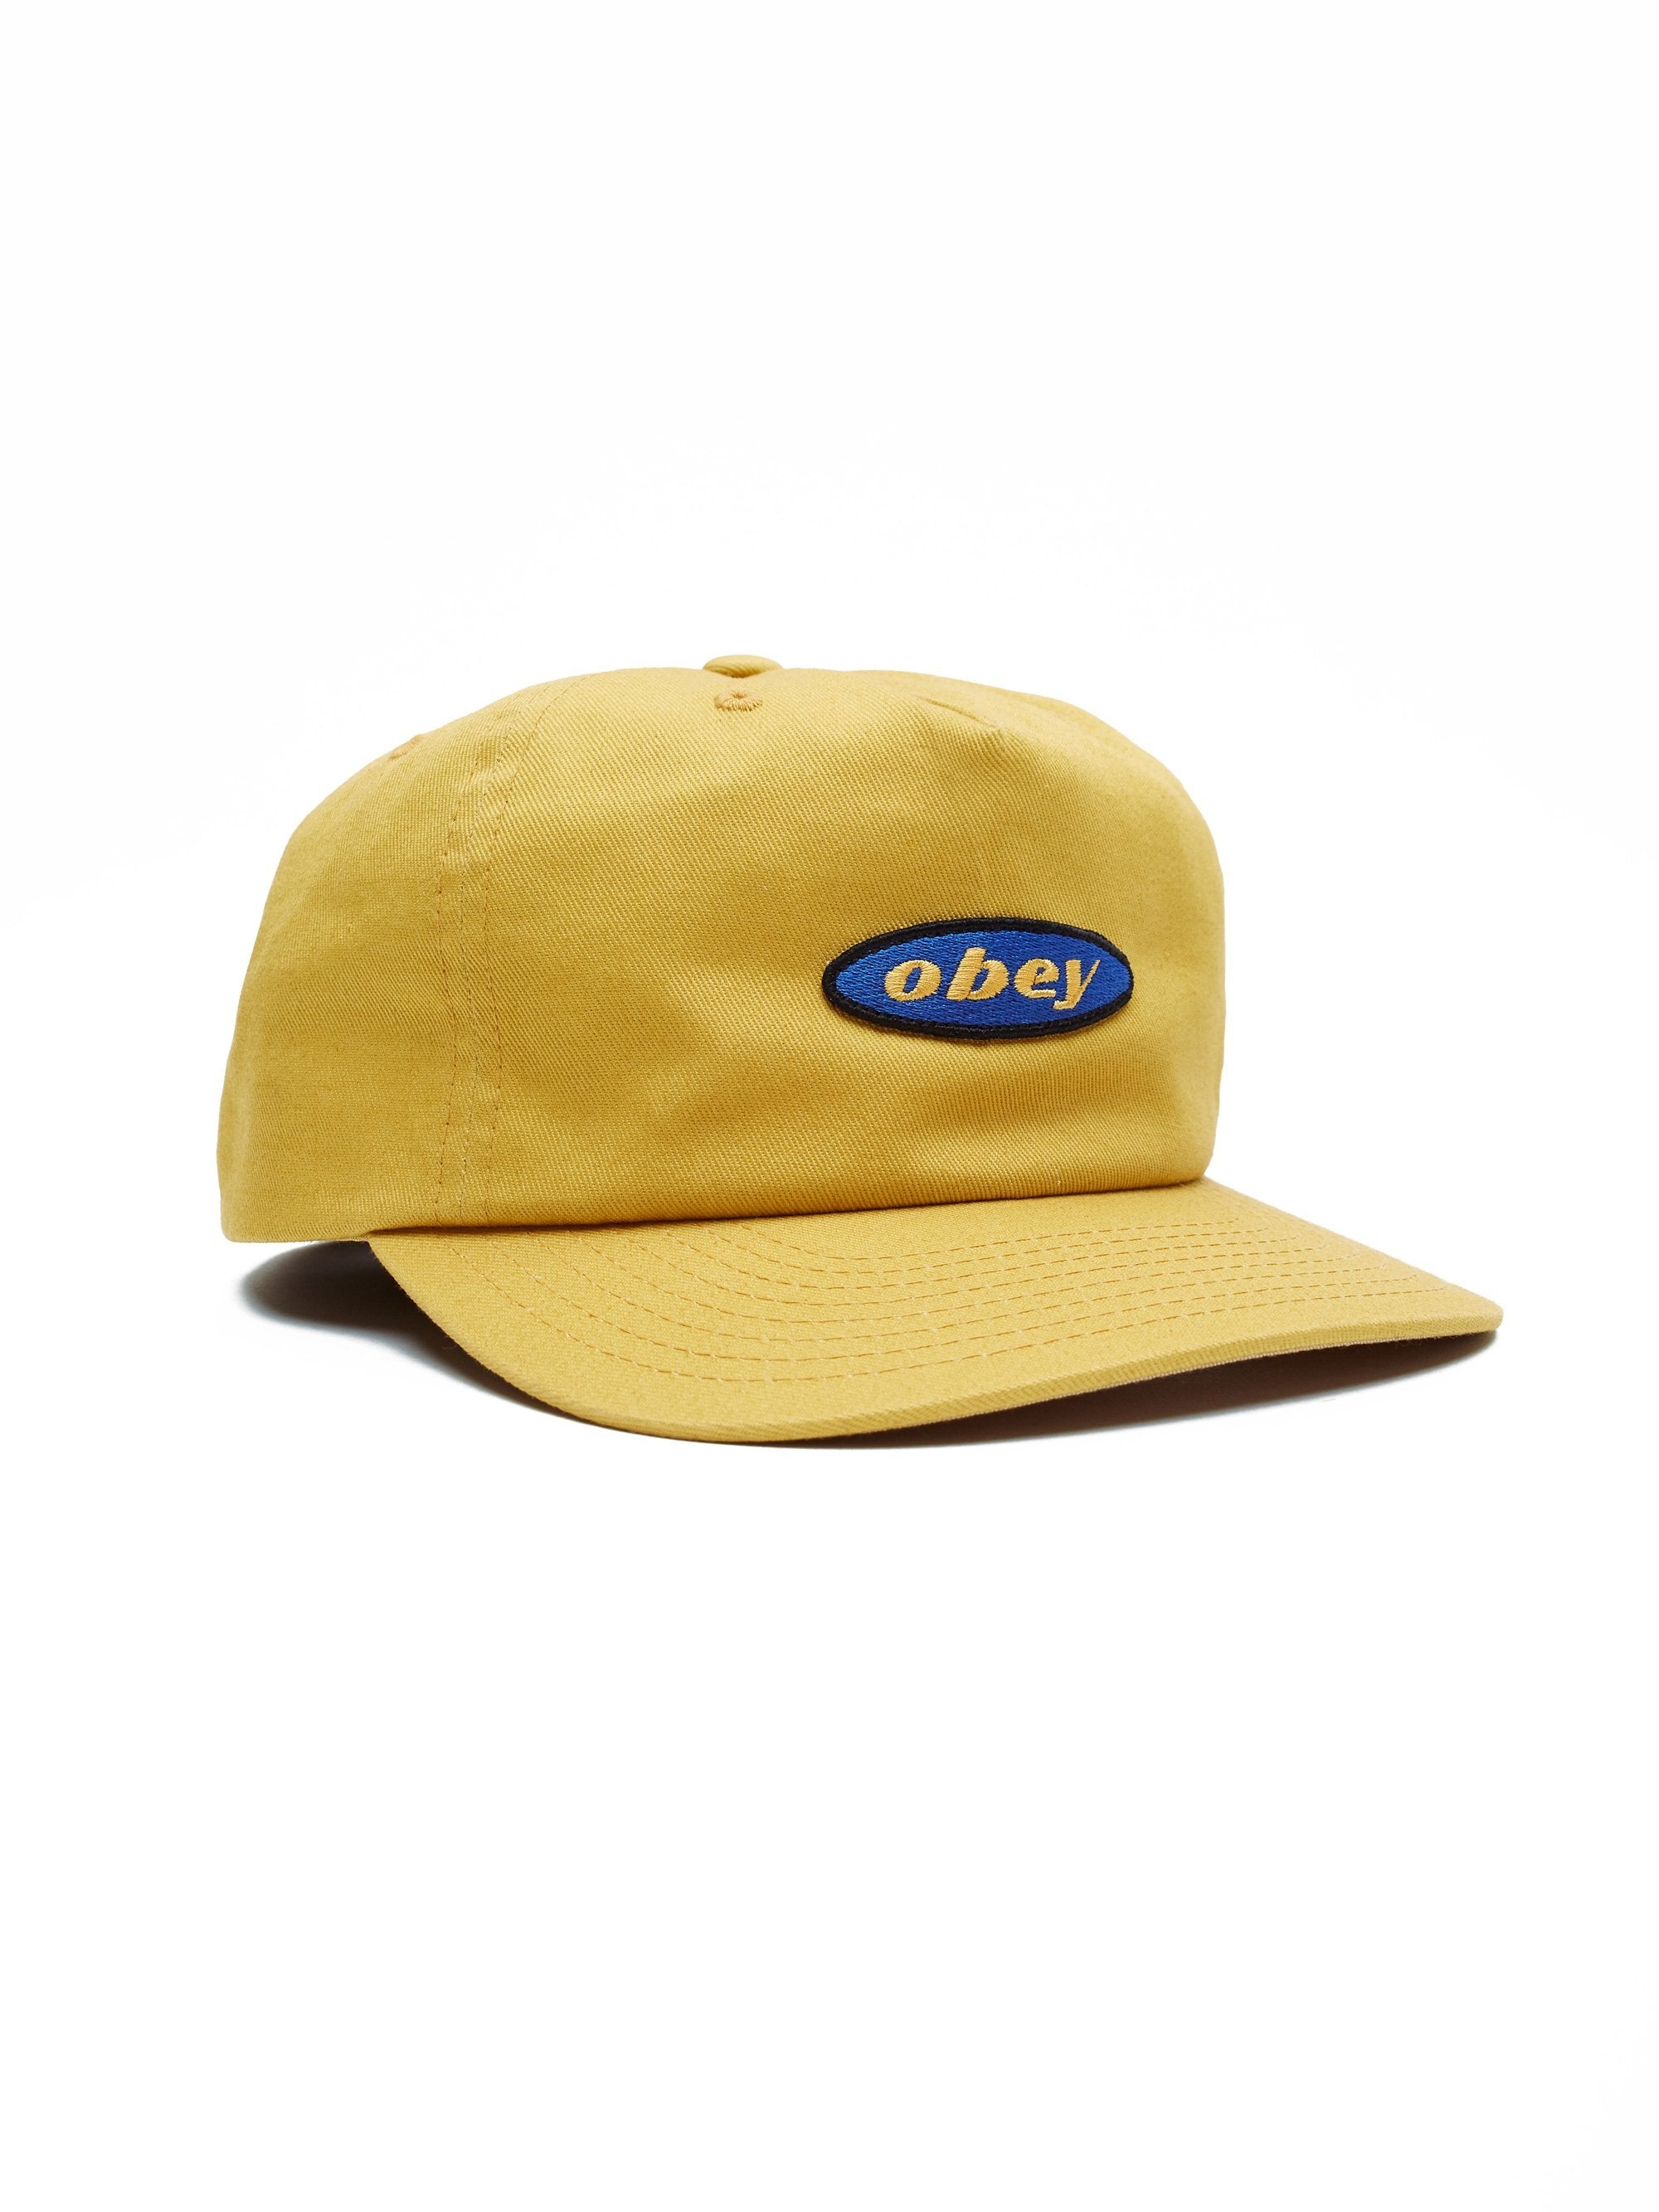 OBEY HATS GOLD O/S ROTATION SNAPBACK - GOLD